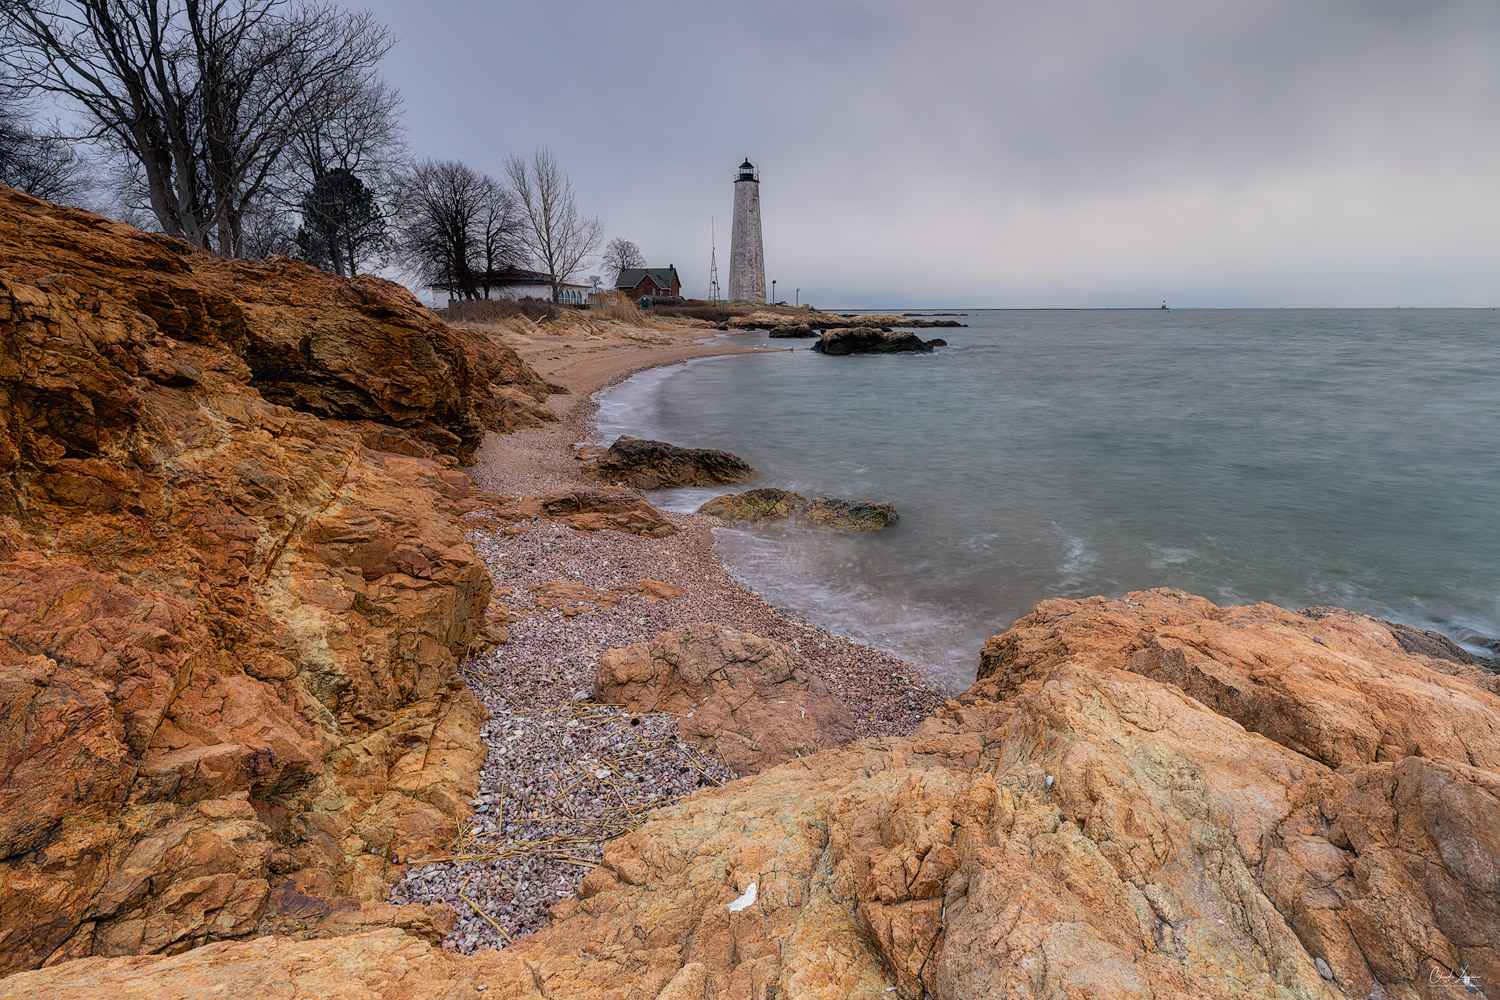 View of New Haven Harbor Lighthouse in New Haven in Connecticut.